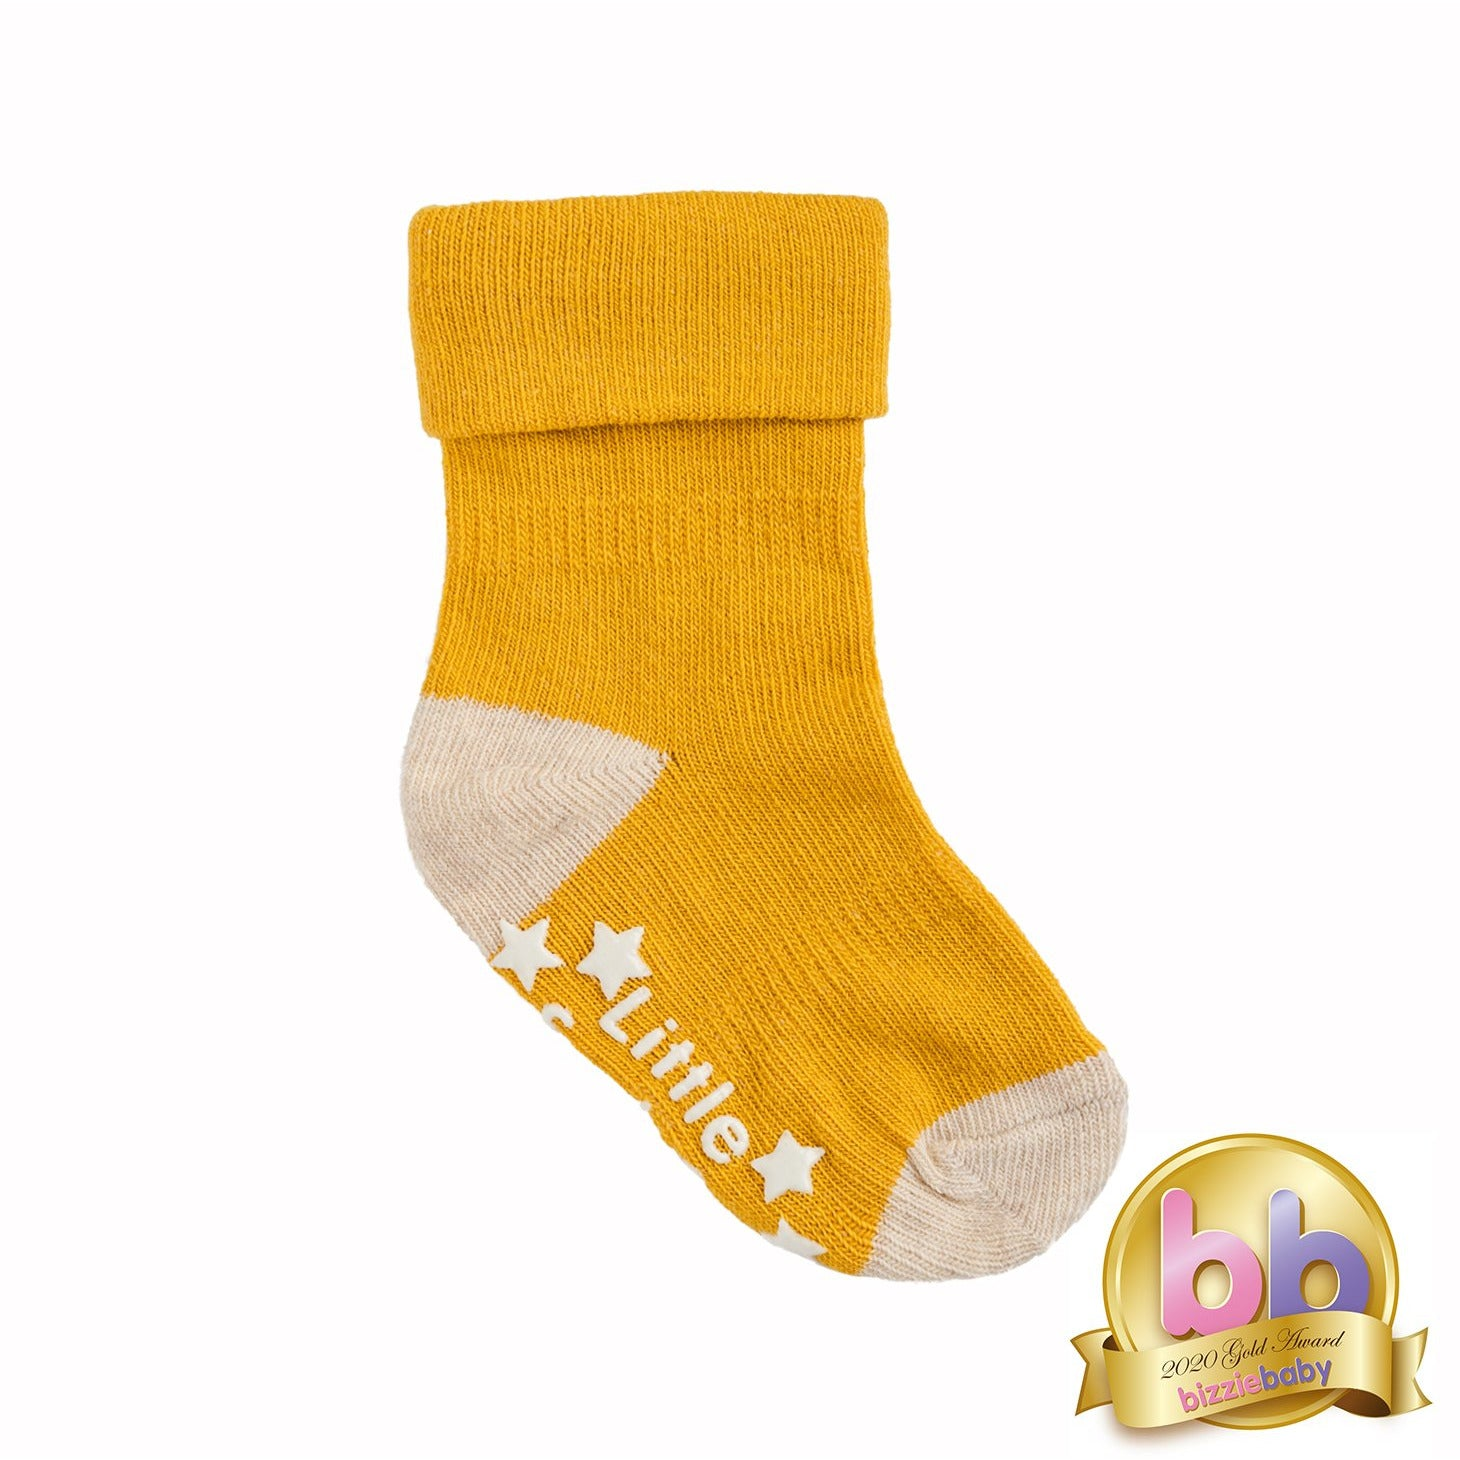 Non-Slip Stay On Socks in Mustard with Oatmeal